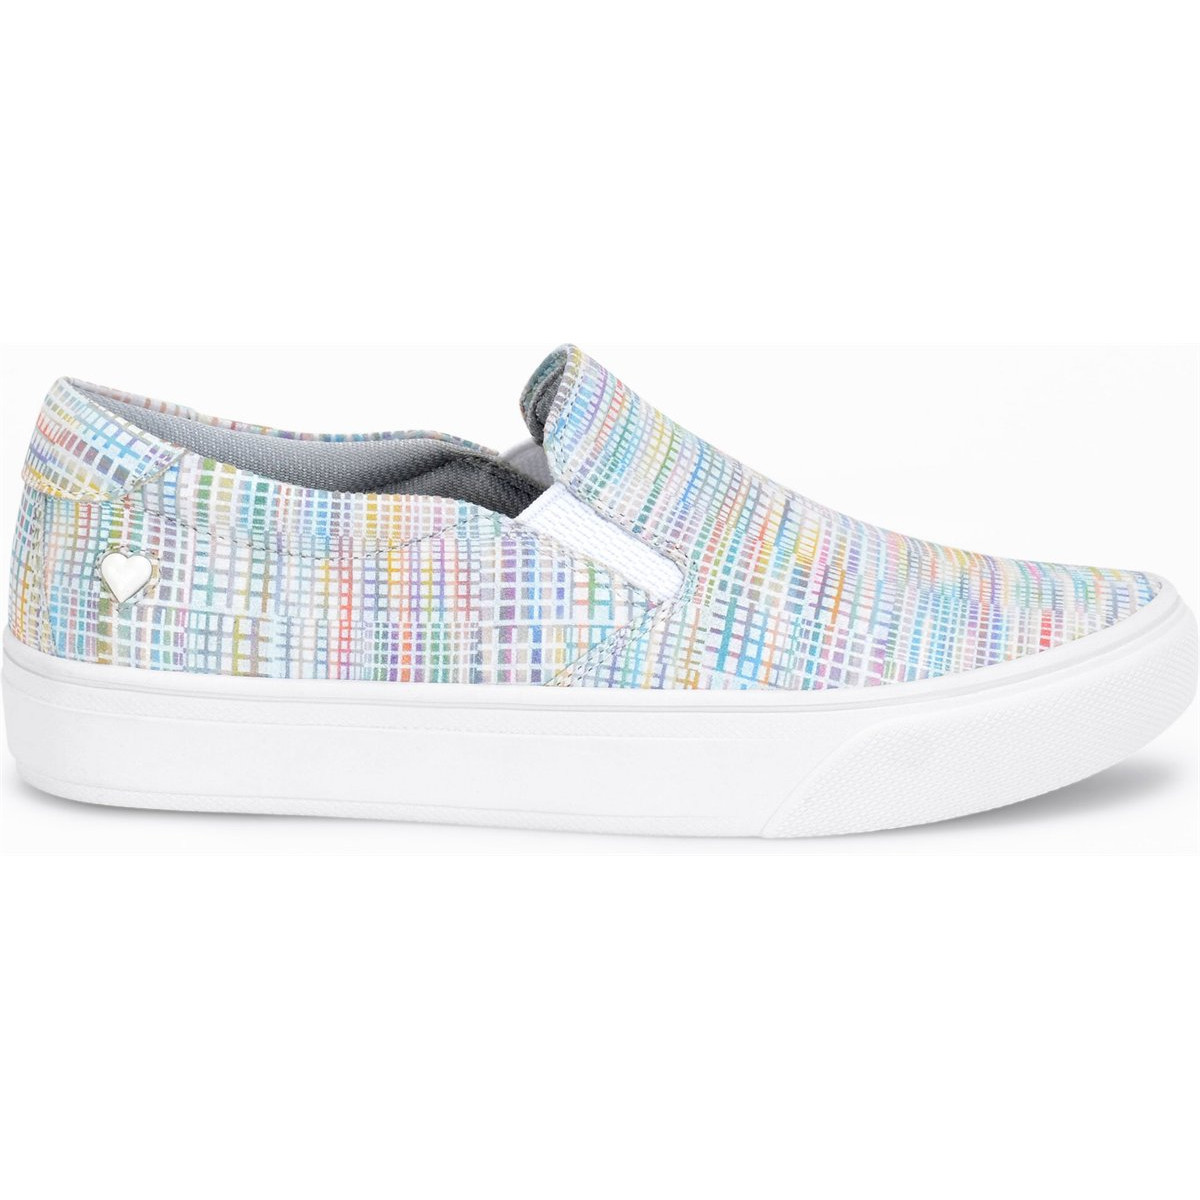 Nurse Mates Women's Align Faxon Slip-On Shoes, Rainbow Sherbet - Black, 10